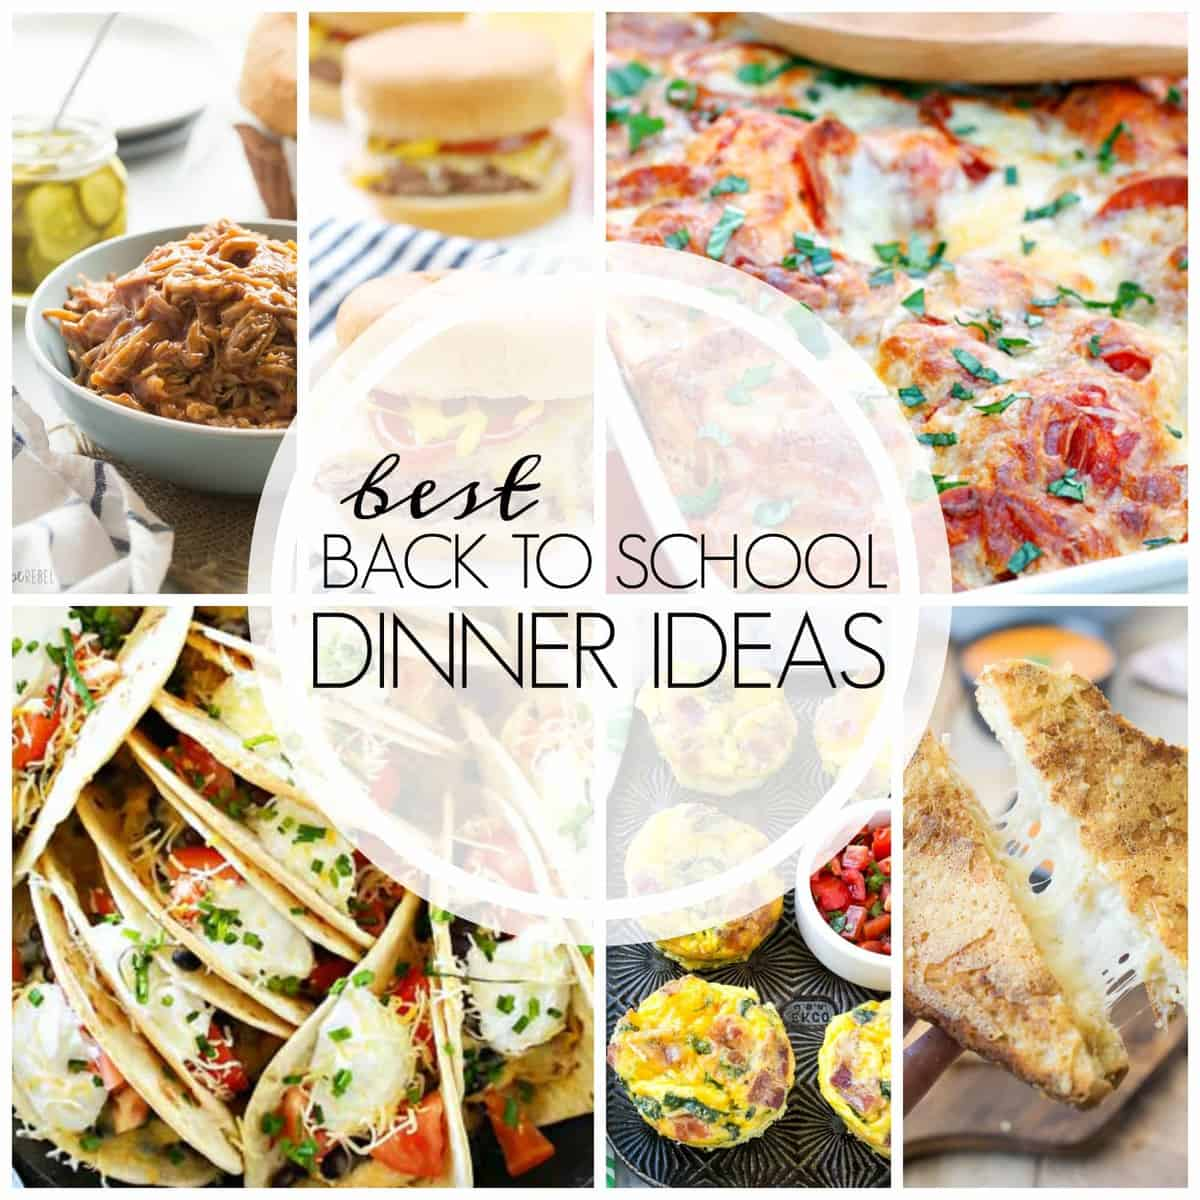 Tons of EASY dinner recipes for back to school: tacos, sandwiches, one pot meals, skillet meals, and everything in between!